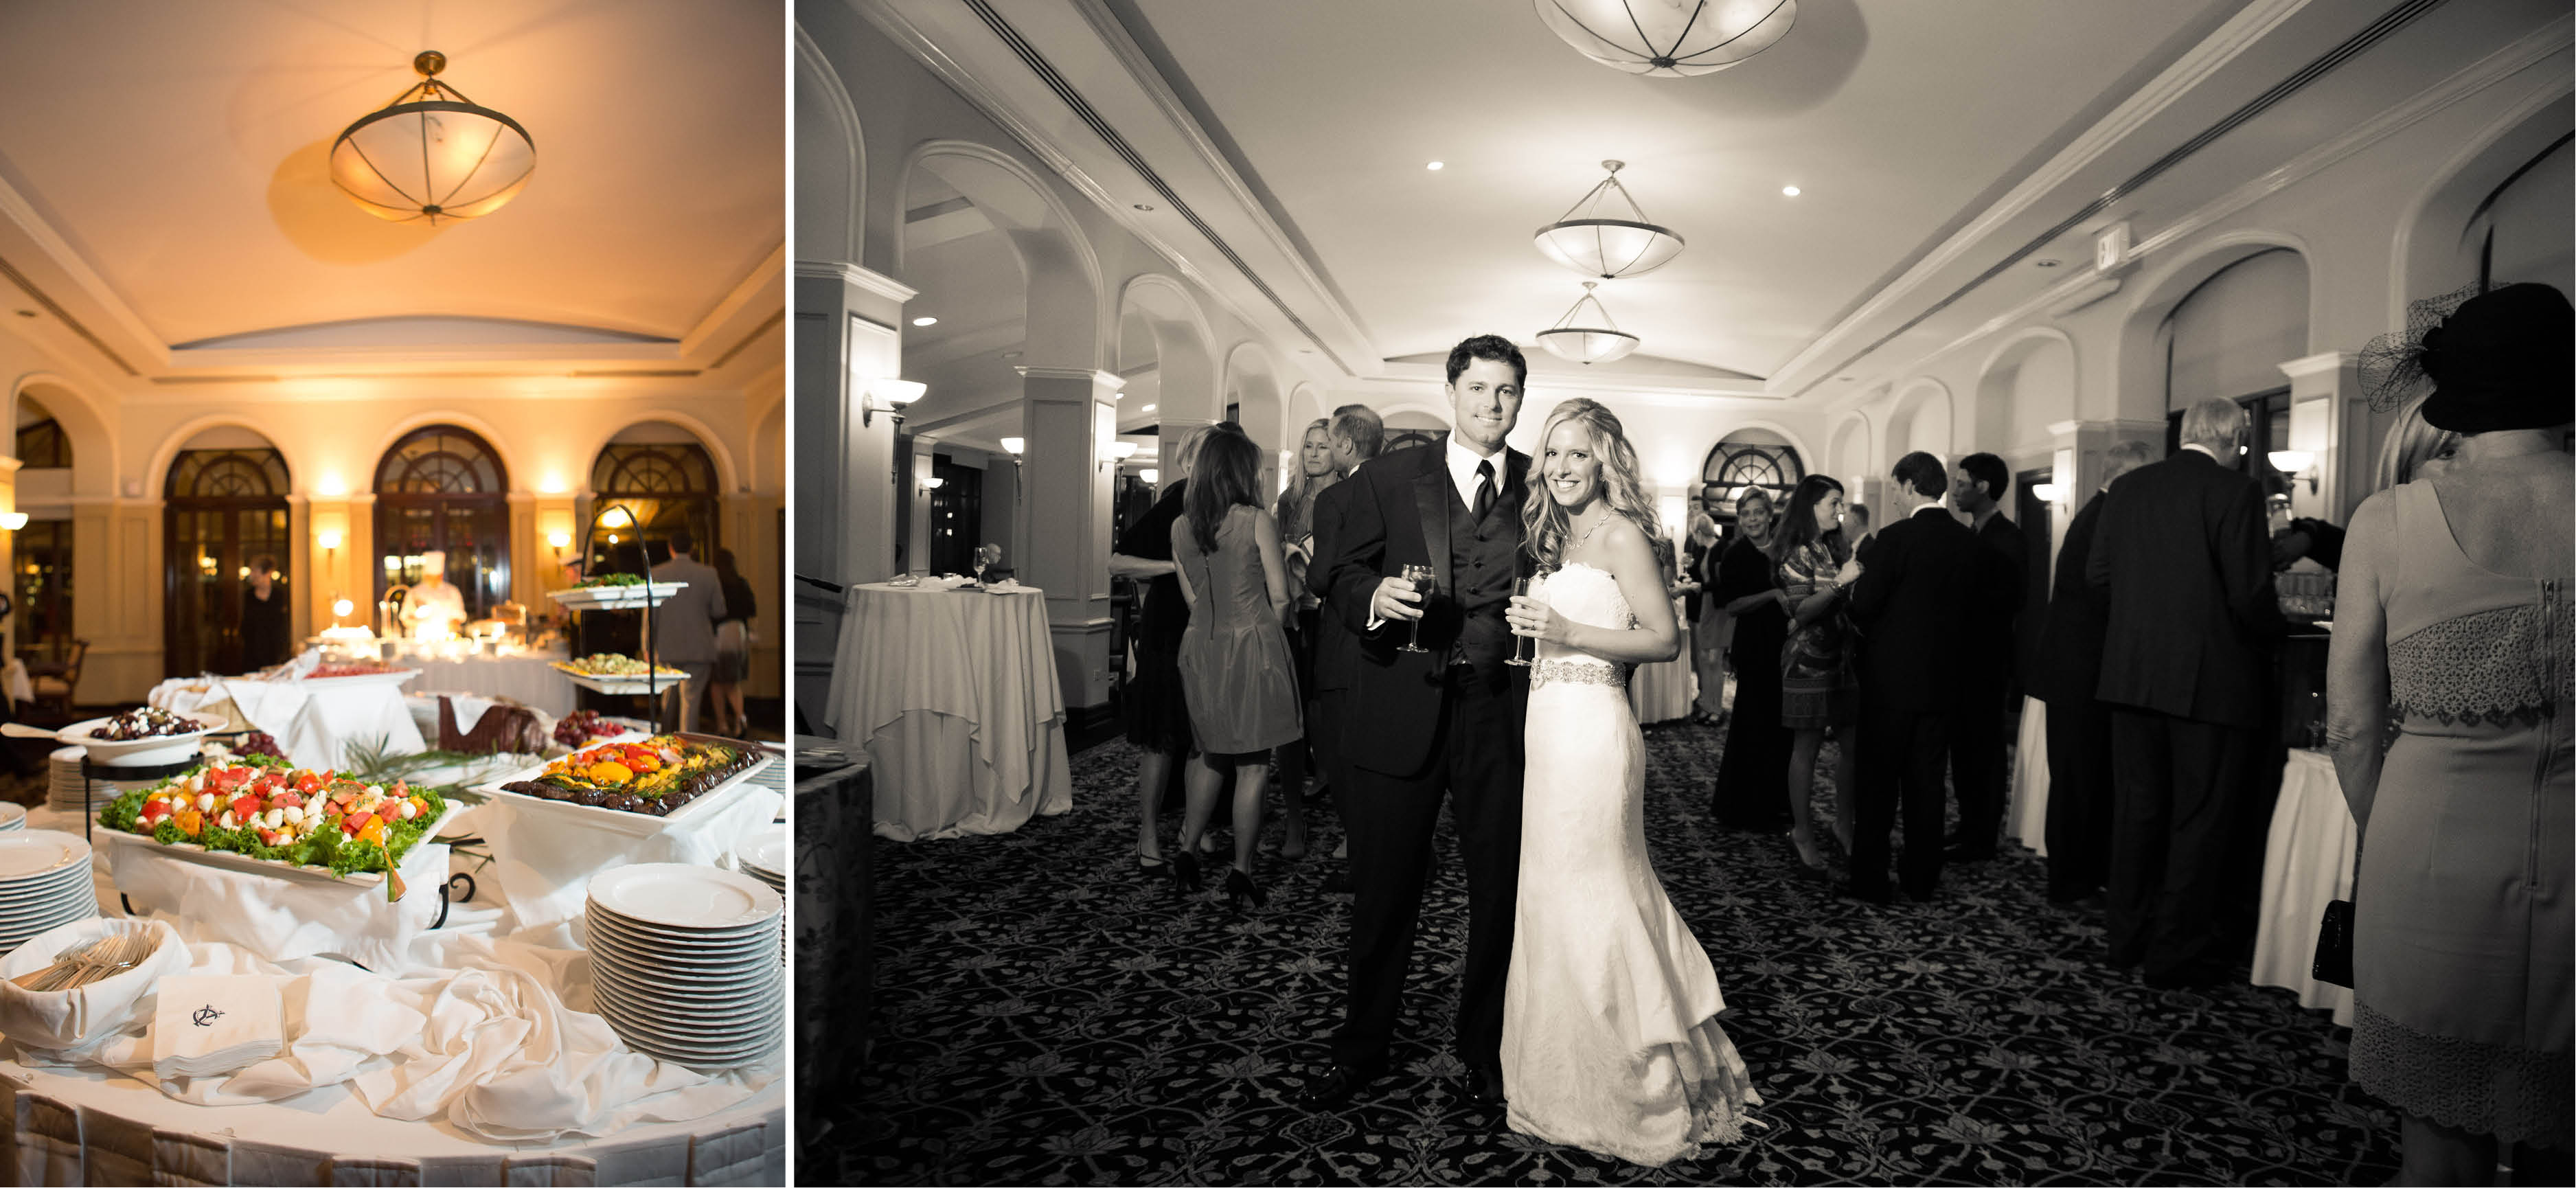 Yale club wedding29